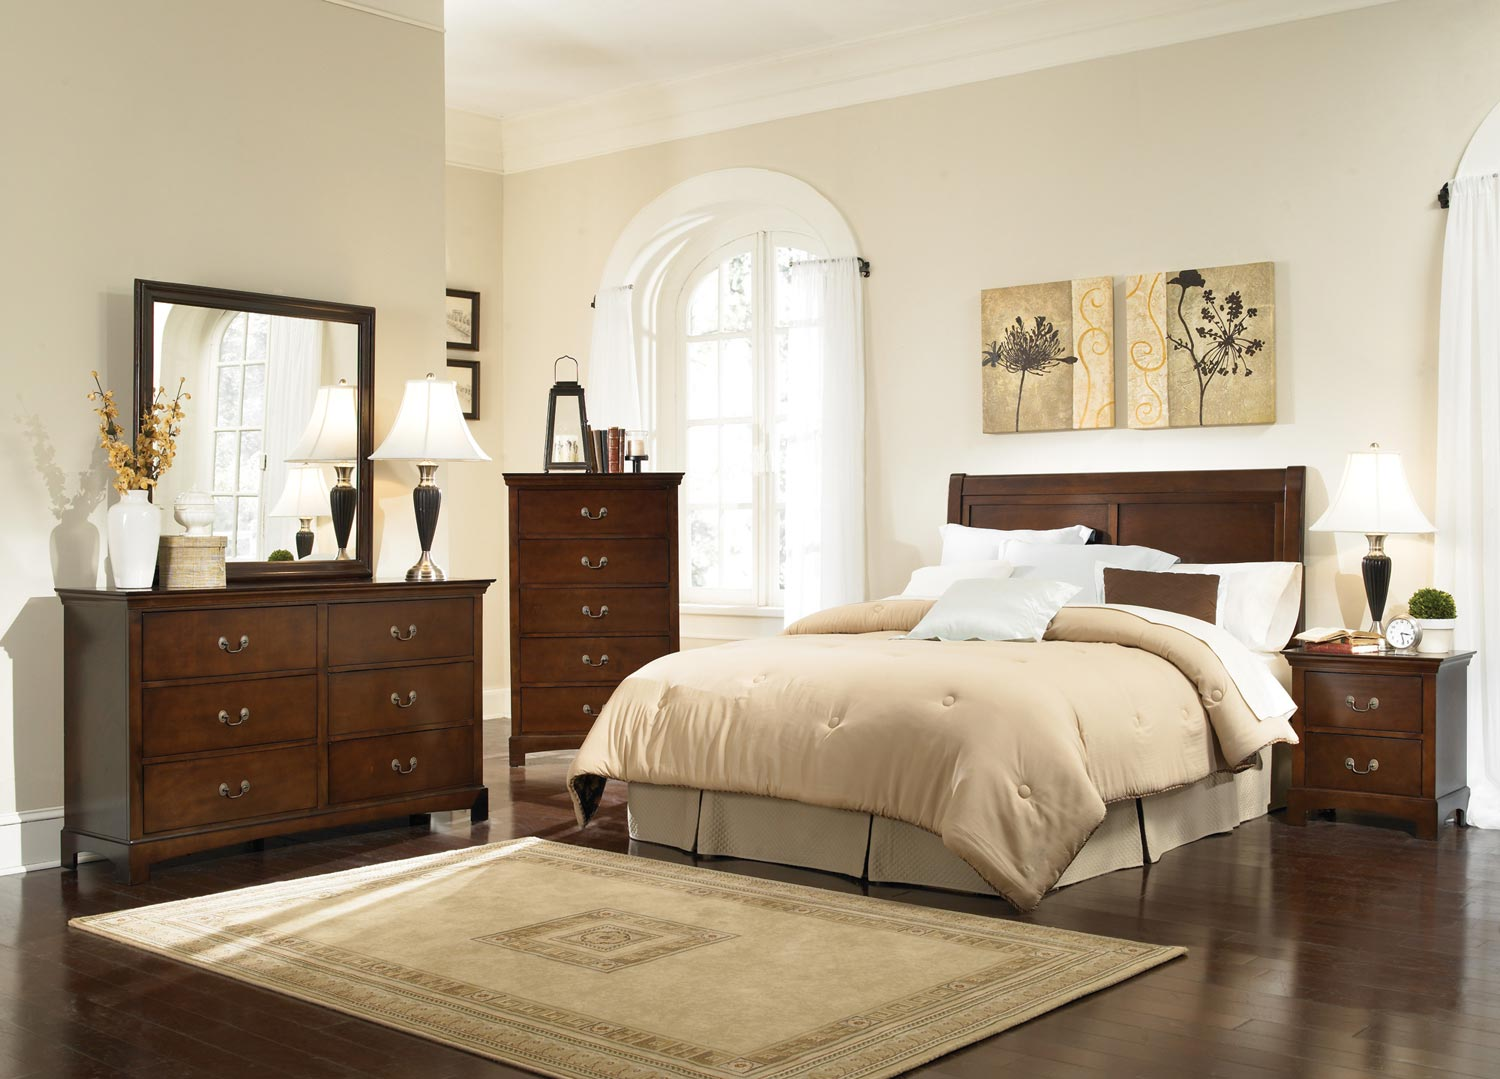 Bedroom Furniture - Traditional Bedroom Set, Contemporary Bedroom ...